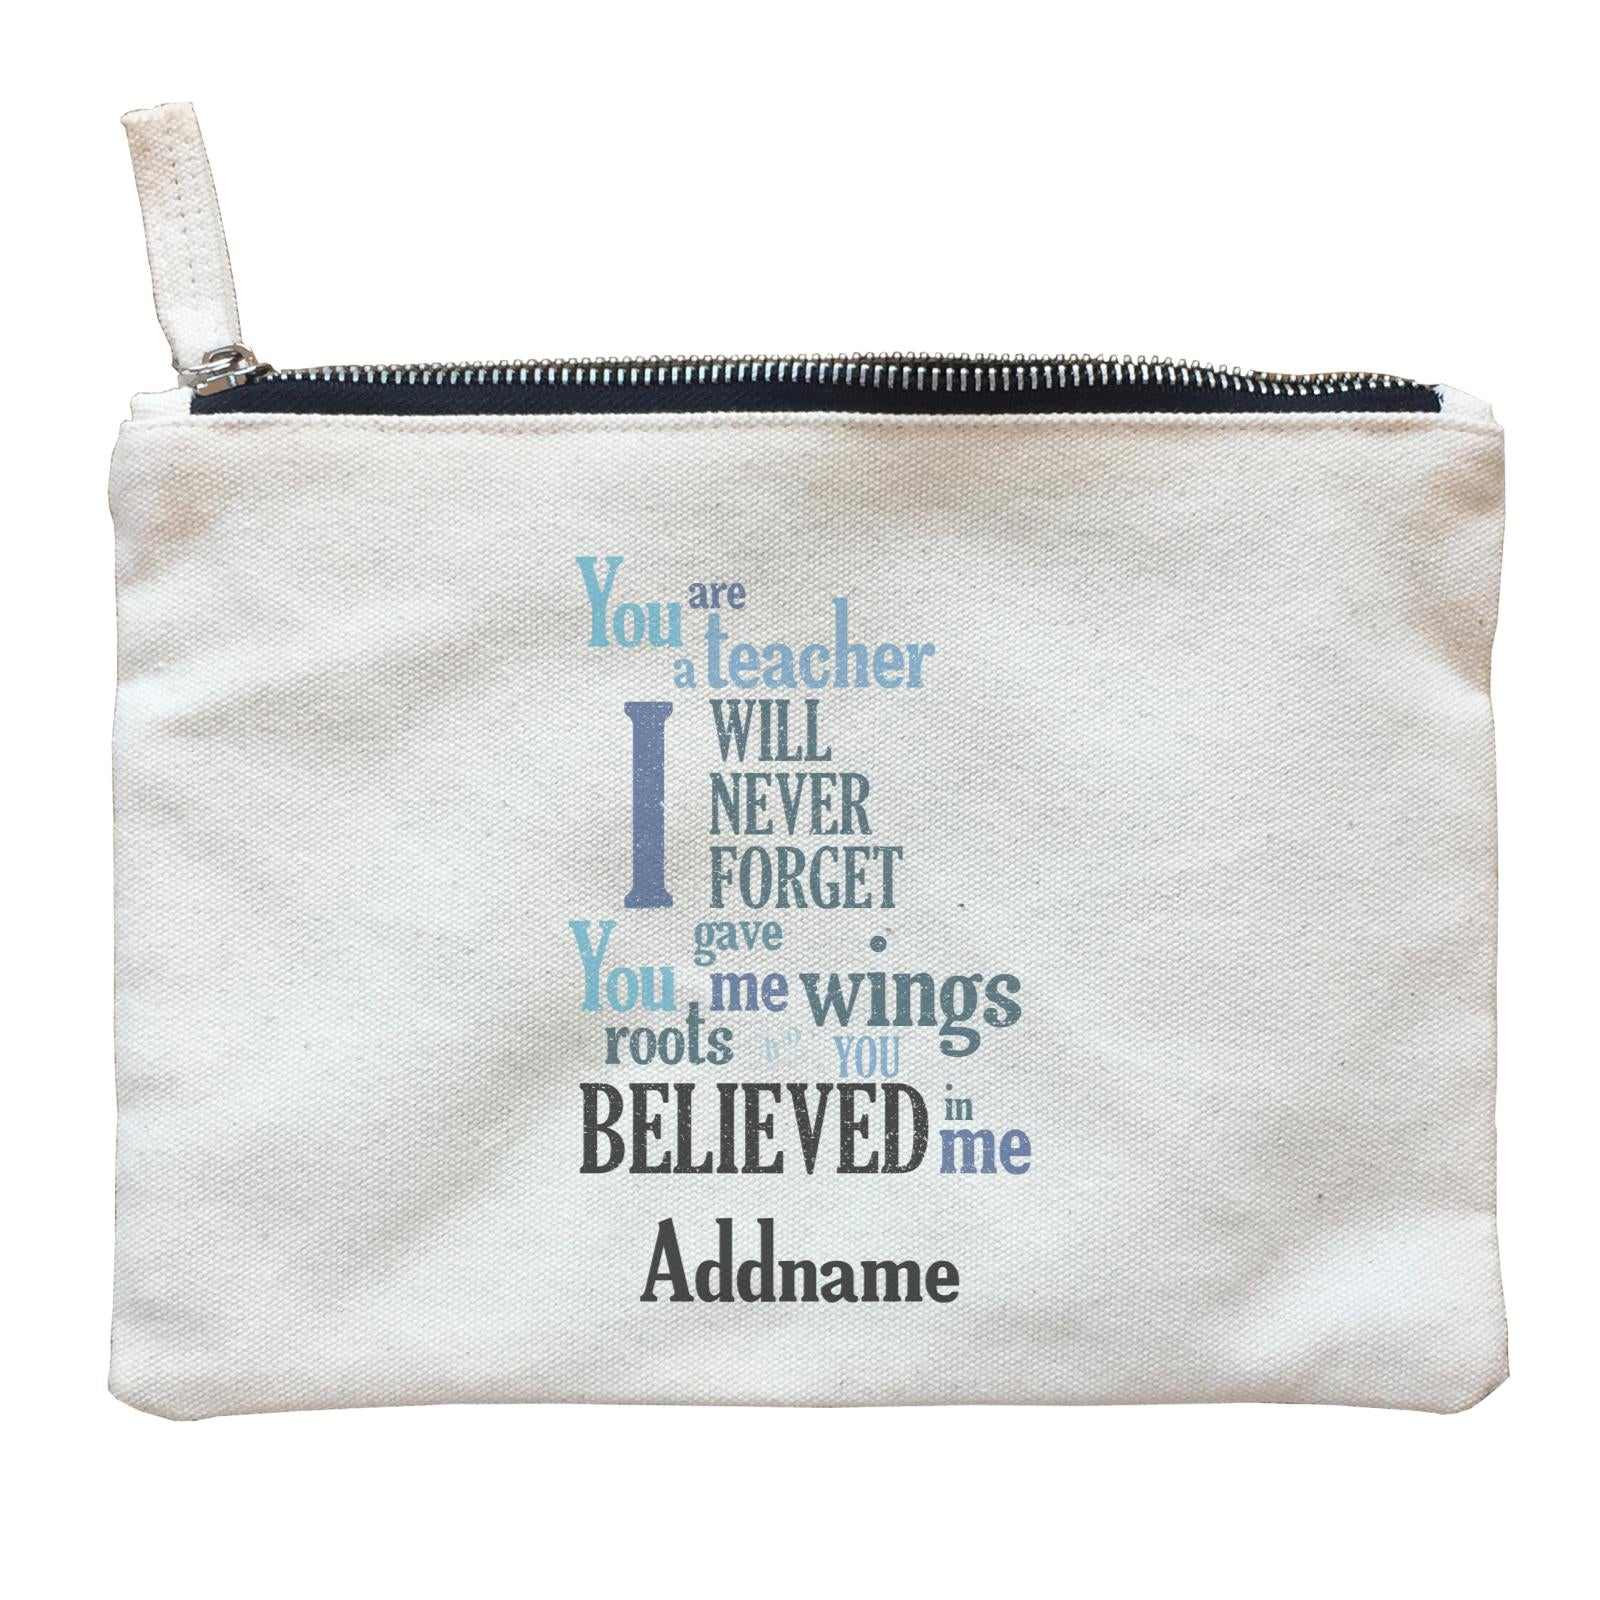 Super Teachers I Will Never Forget You Gave Me Wings Roots And You Believed In Me Addname Zipper Pouch